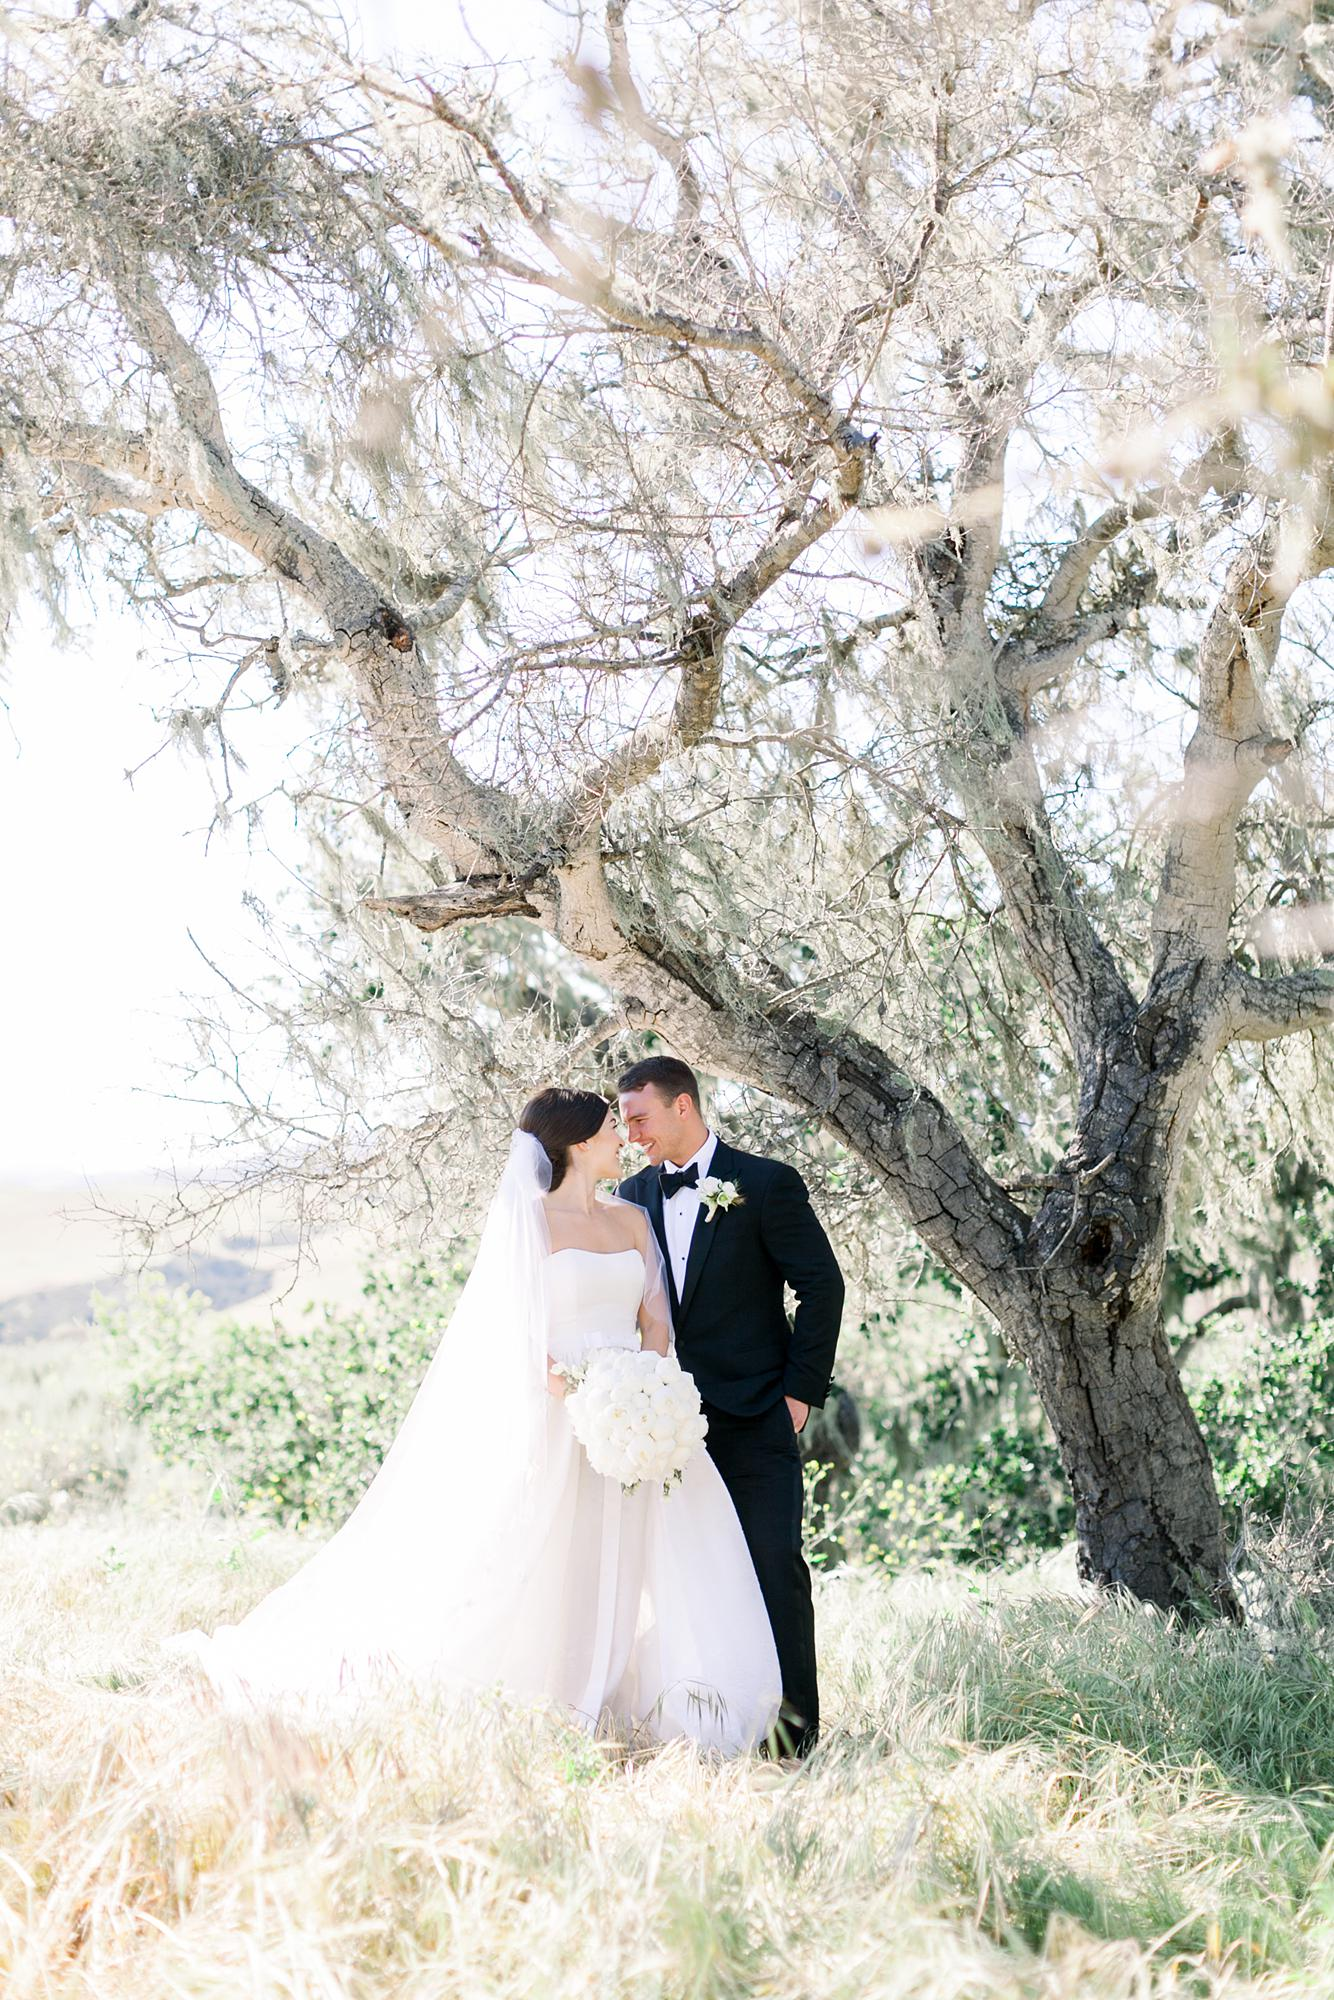 Santa Ynez Vineyard Private Estate Wedding | Miki & Sonja Photography | mikiandsonja.com